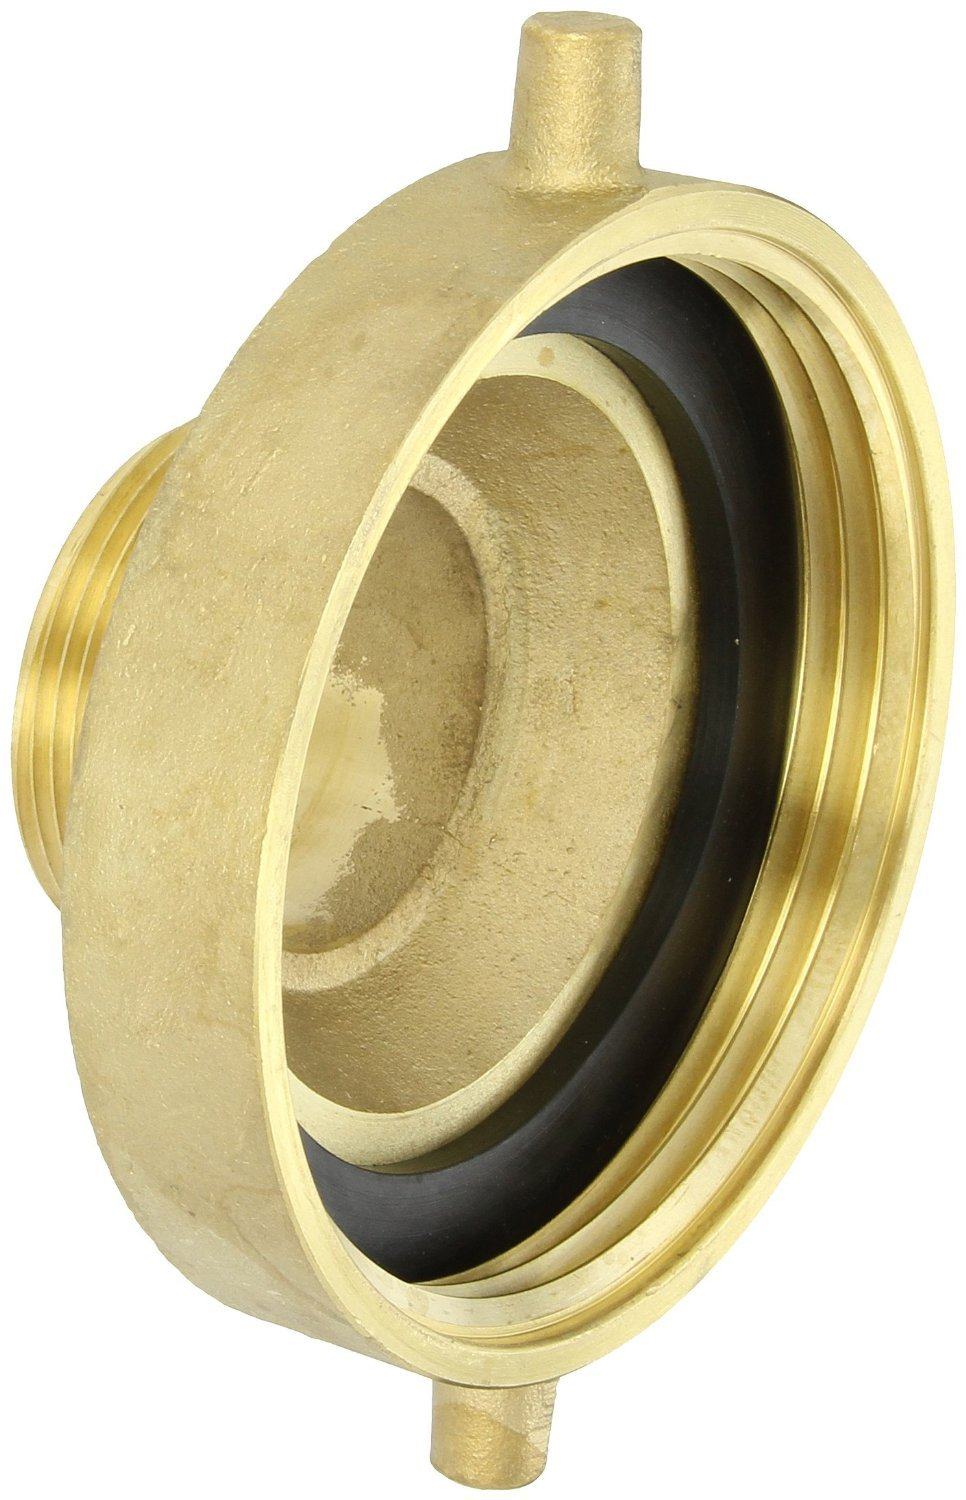 Dixon Valve HA4525F Brass Fire Equipment, Hydrant Adapter with Pin Lug, 4-1/2'' NST (NH) Female x 2-1/2'' NST (NH) Male